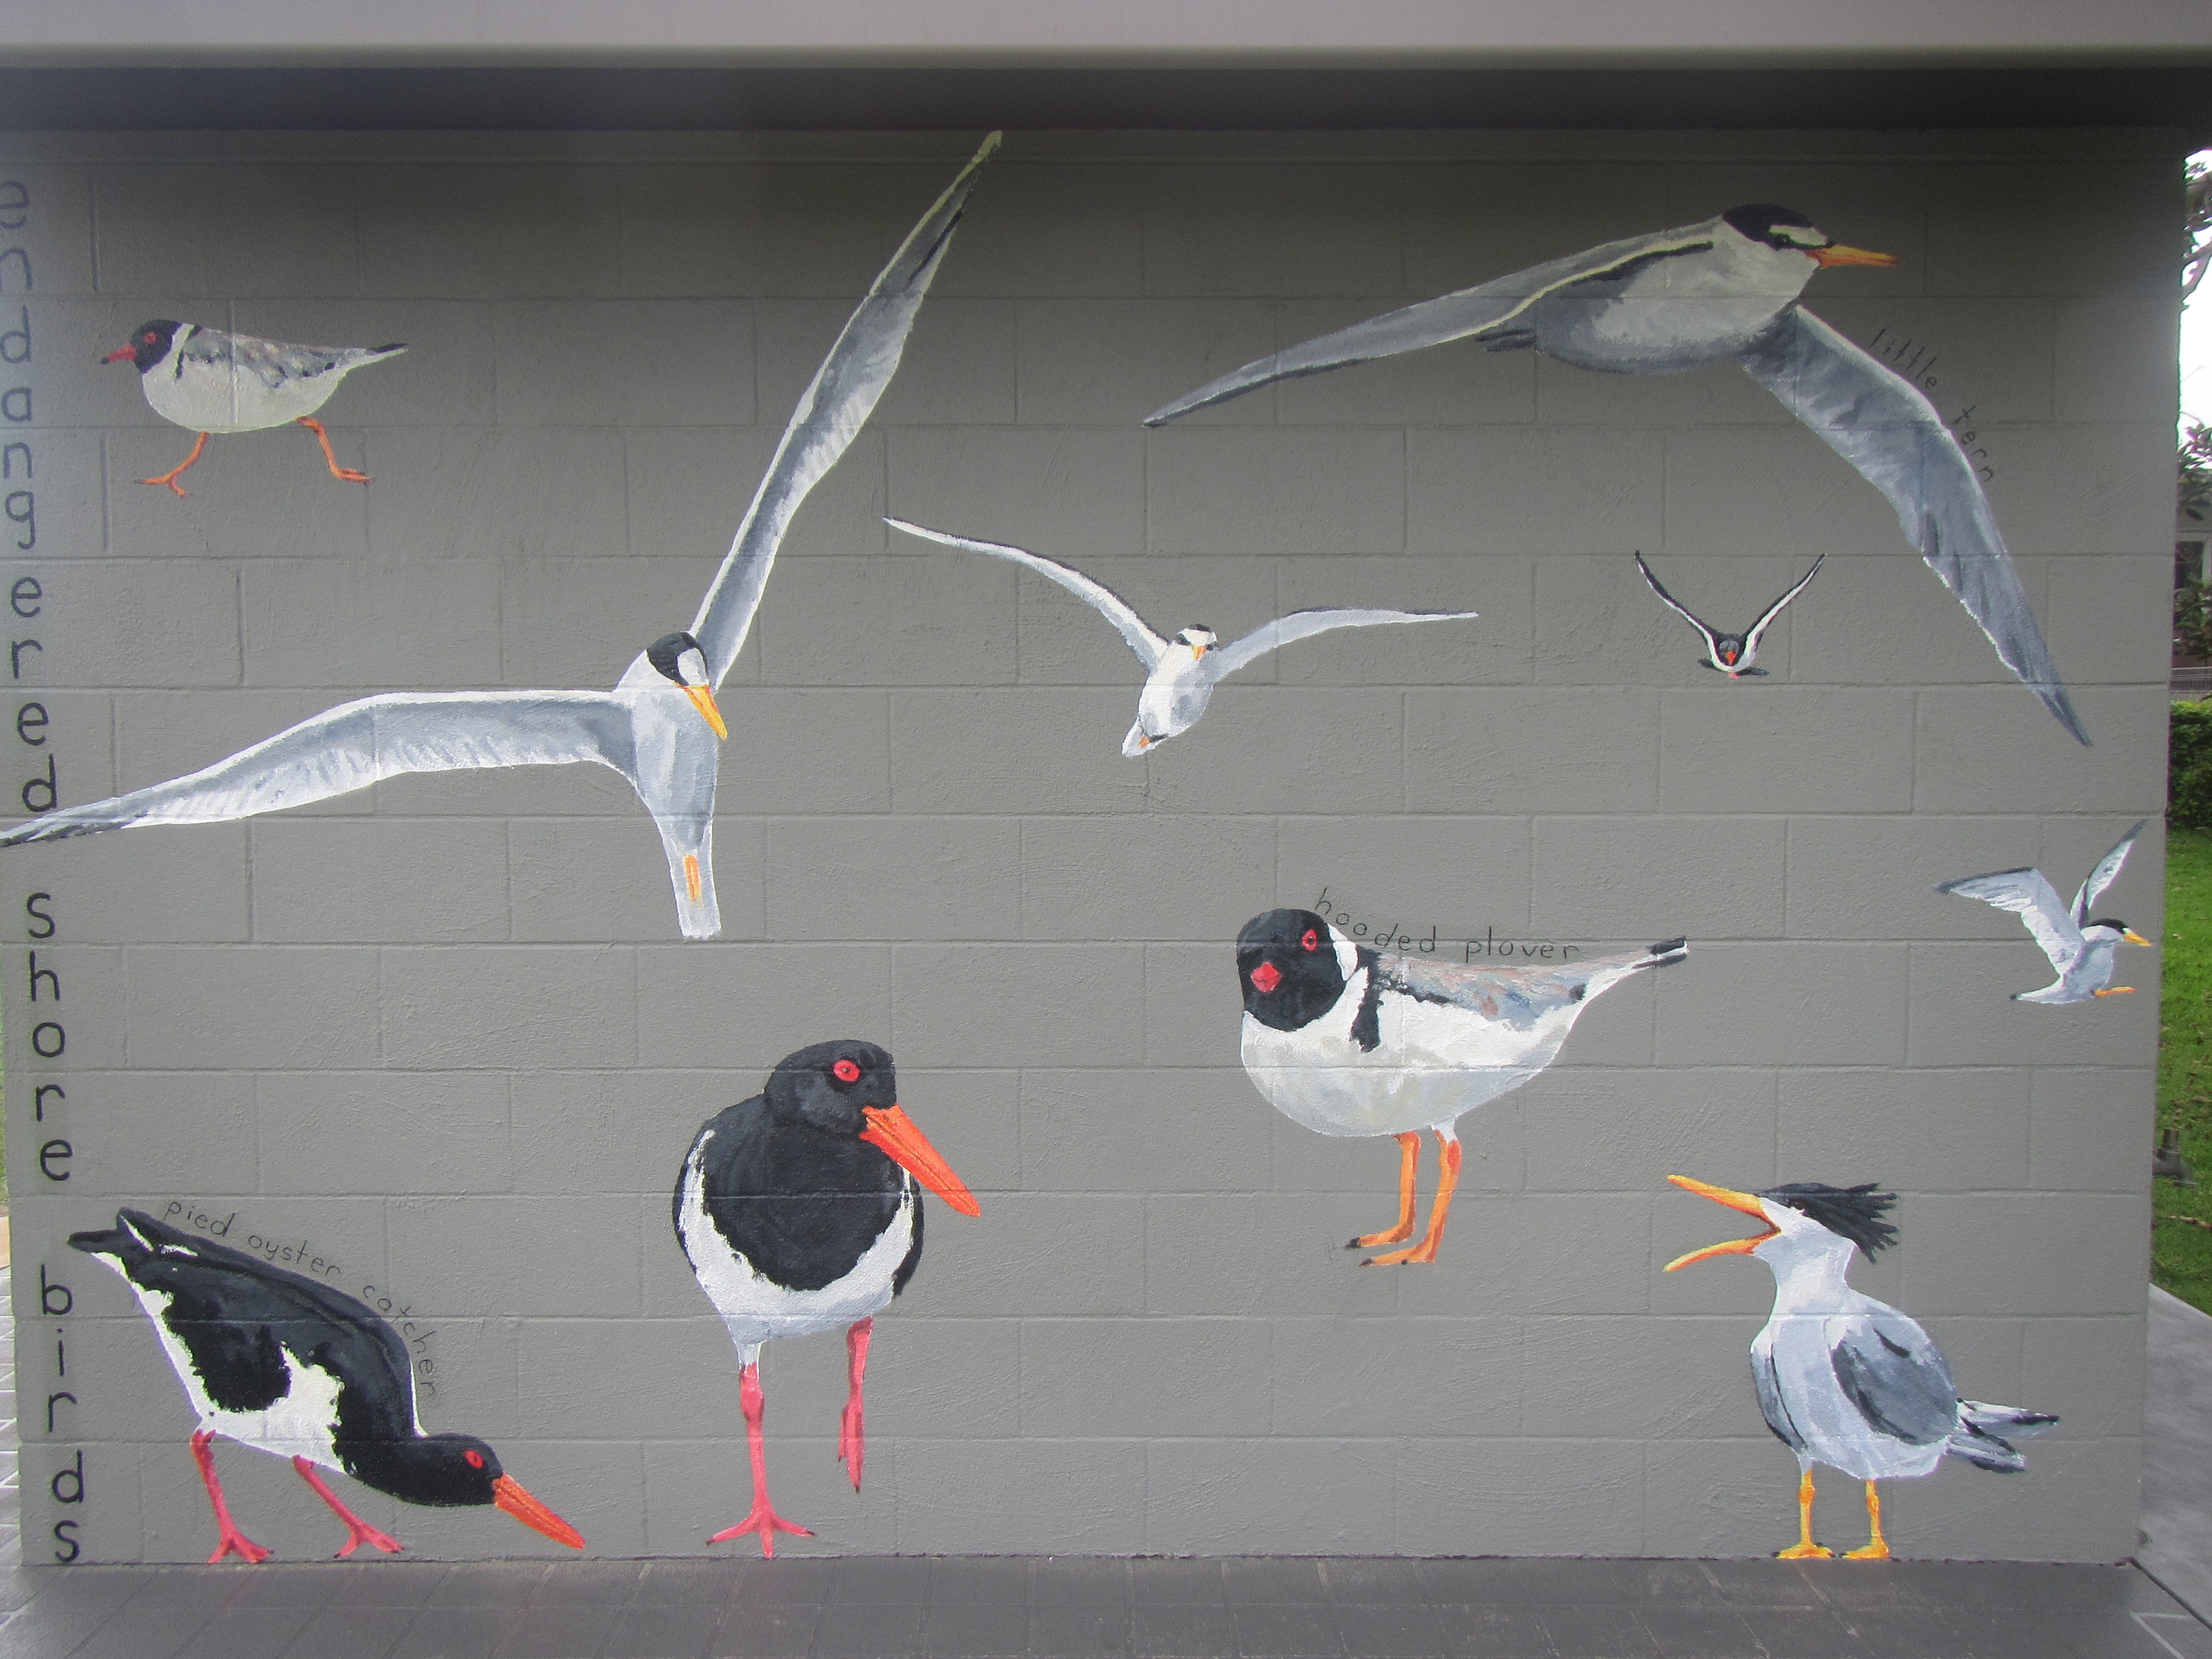 Simon tedder img 4779 bird mural wall painting 2016